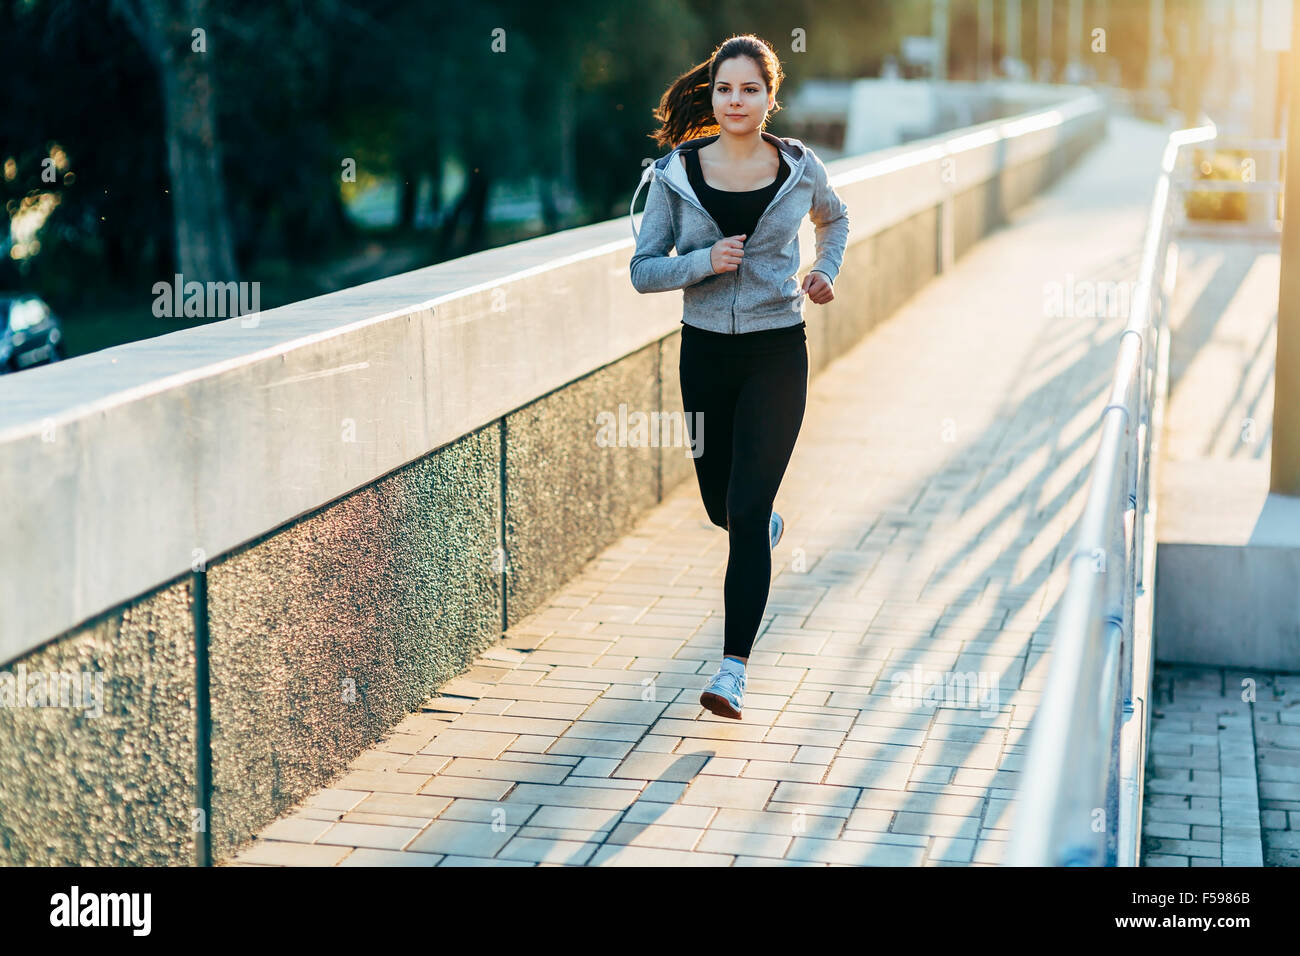 Sporty woman jogging in city to keep her body and soul in shape - Stock Image